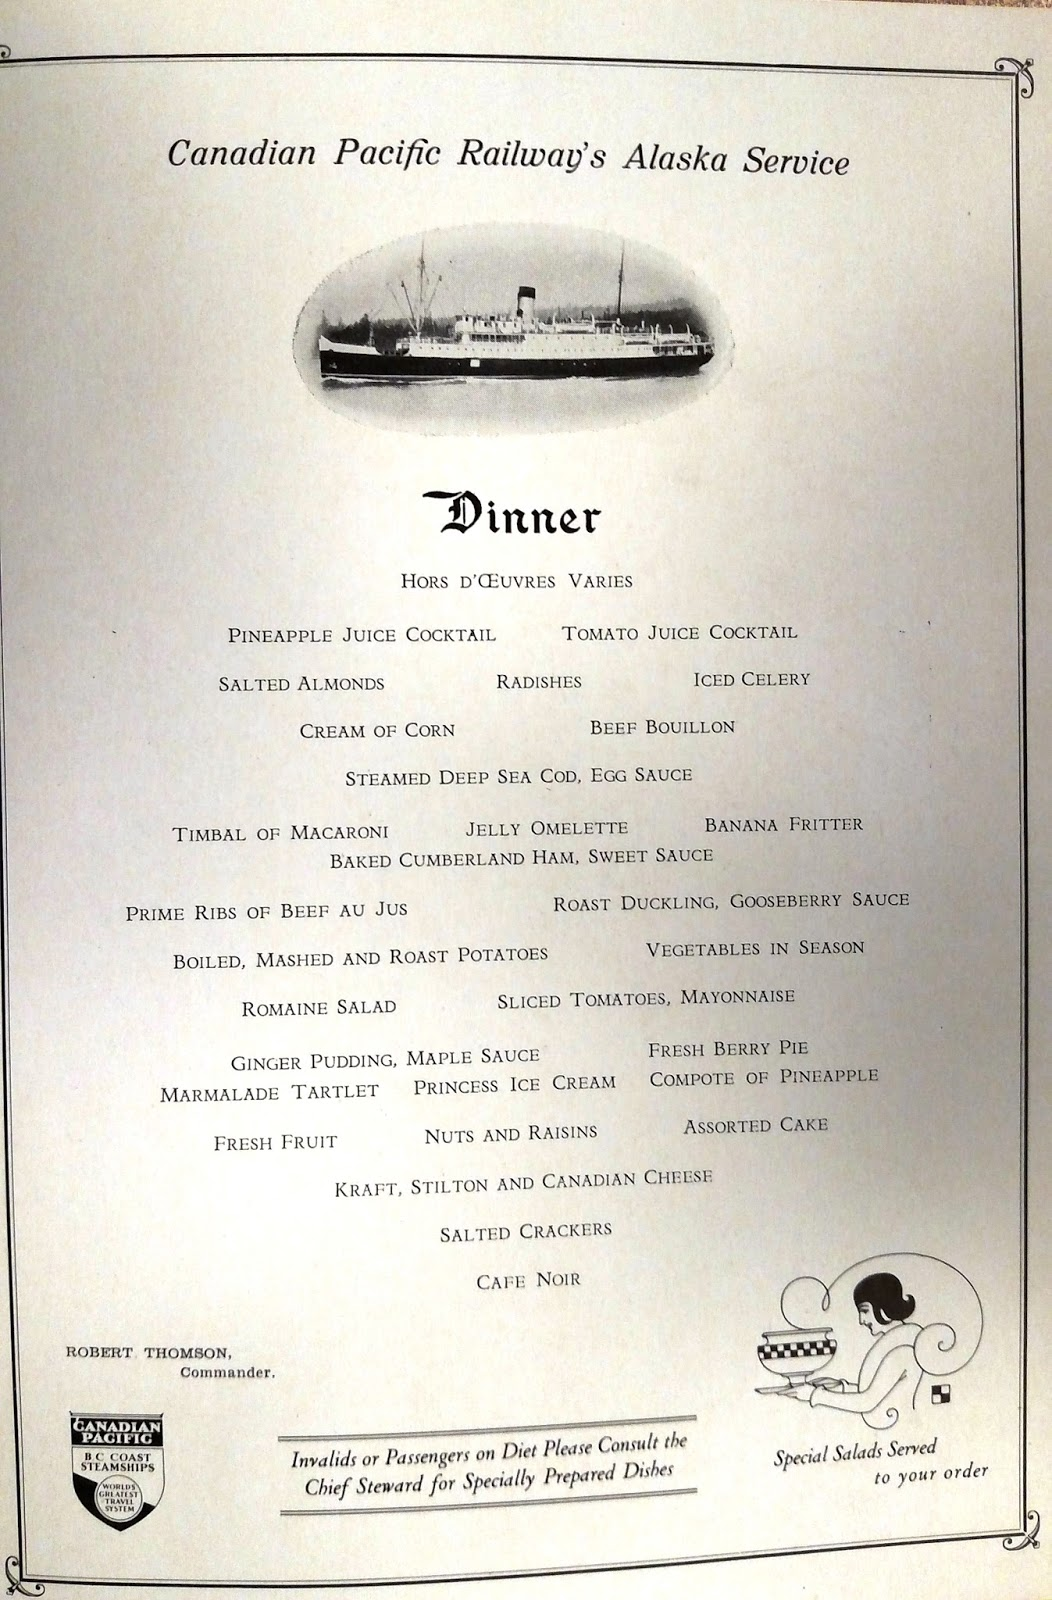 Inside Passage A Pretty Good Spread Shipboard Menus From The Puget Sound Maritime Collection